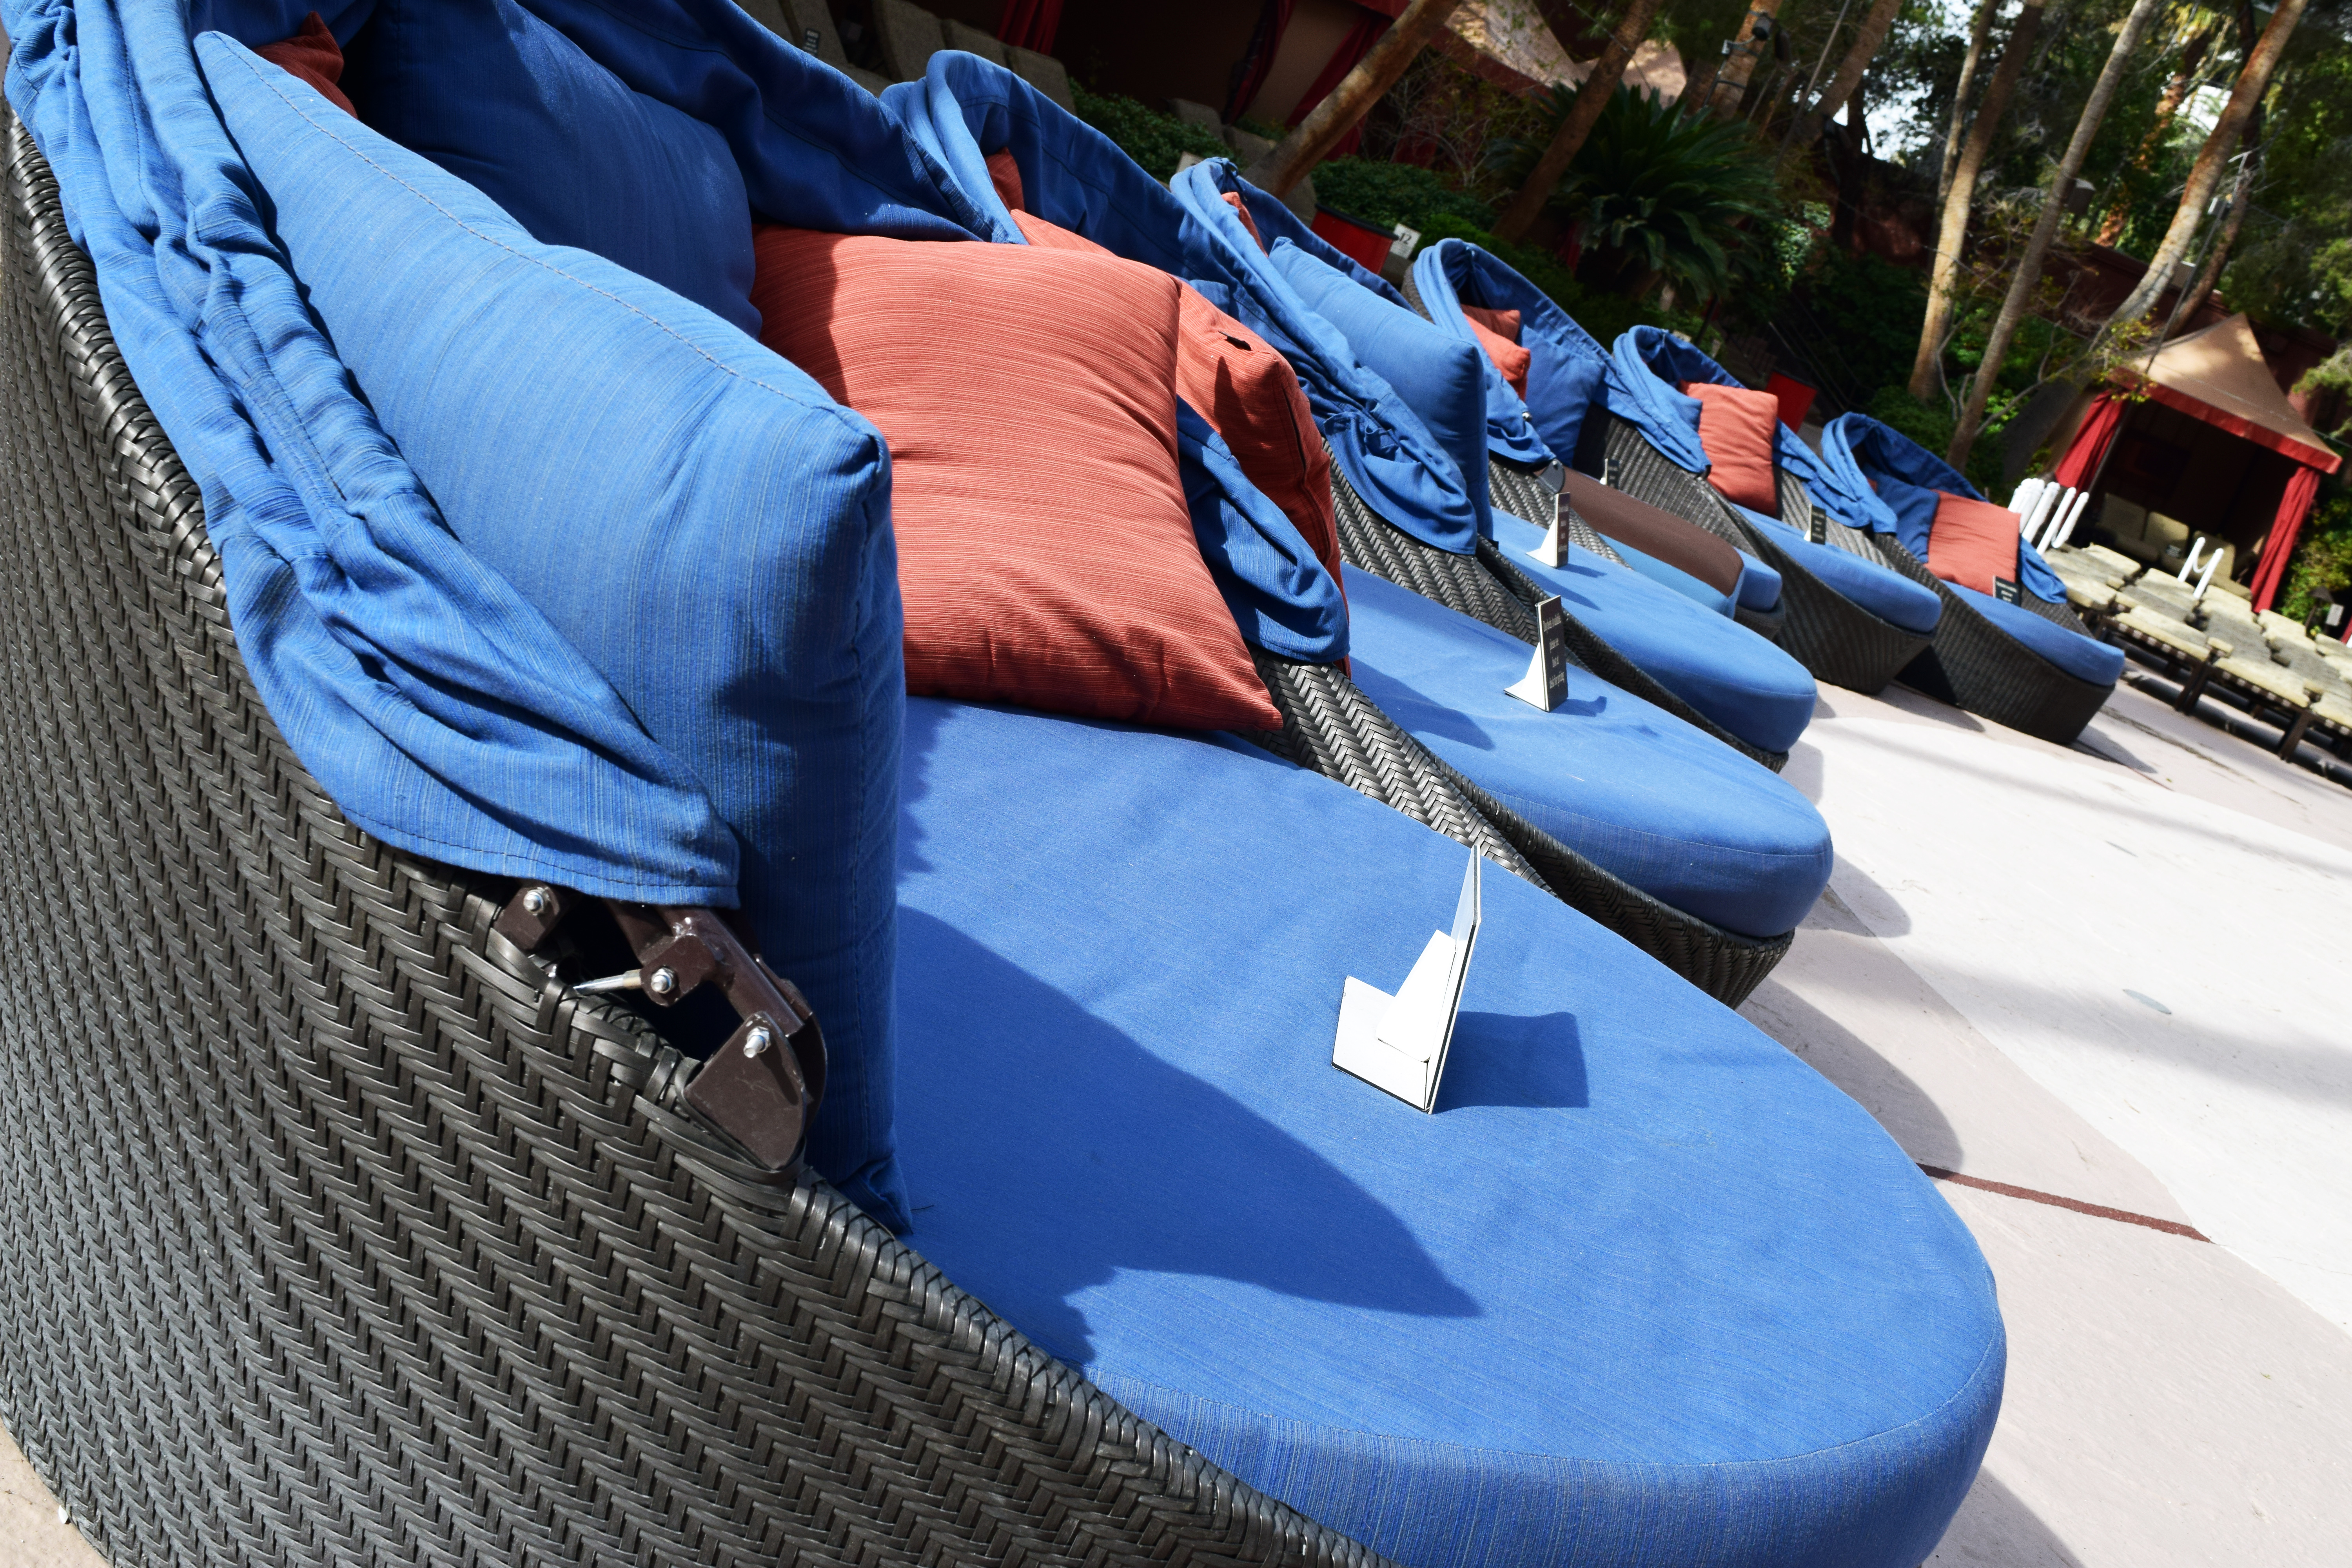 Day Beds U0026 Luxury Lounge Chairs